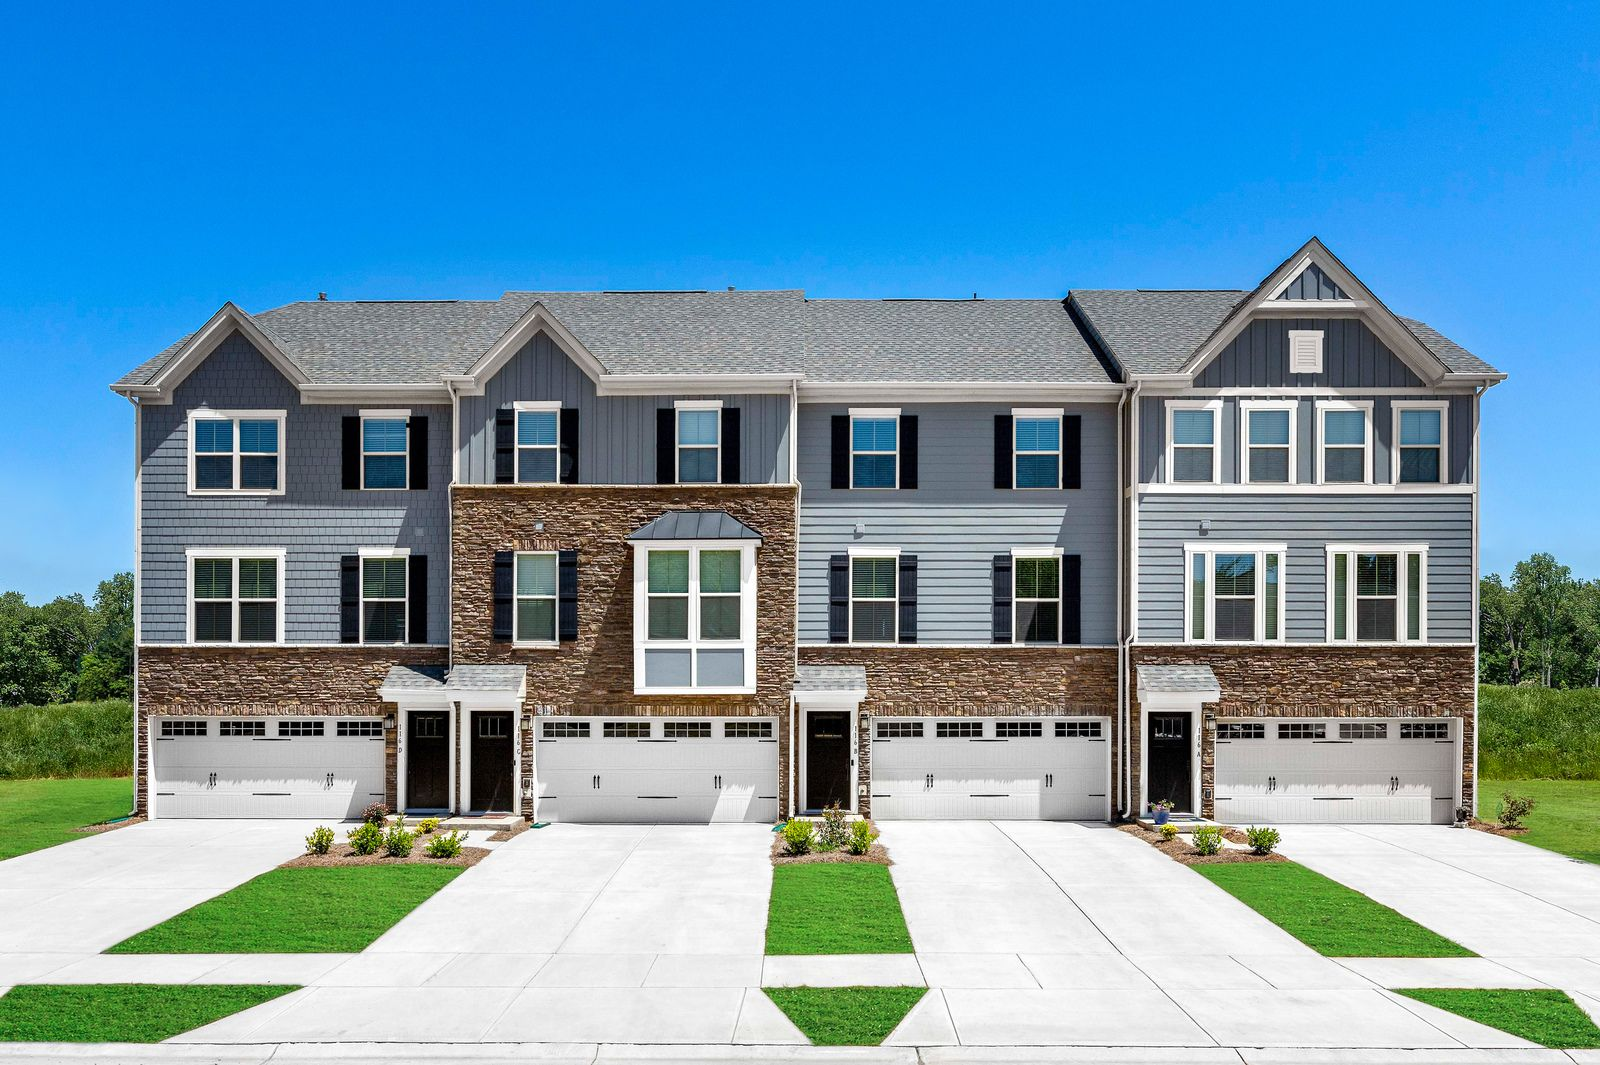 NEW TOWNHOMES WITHIN WALKING DISTANCE TO LAKE NORMAN:Want your owner's suite upstairs -or maybe you prefer main level living? We've got options for you!Schedule a visitto learn more about the available floorplansat Waterfront at Langtree.